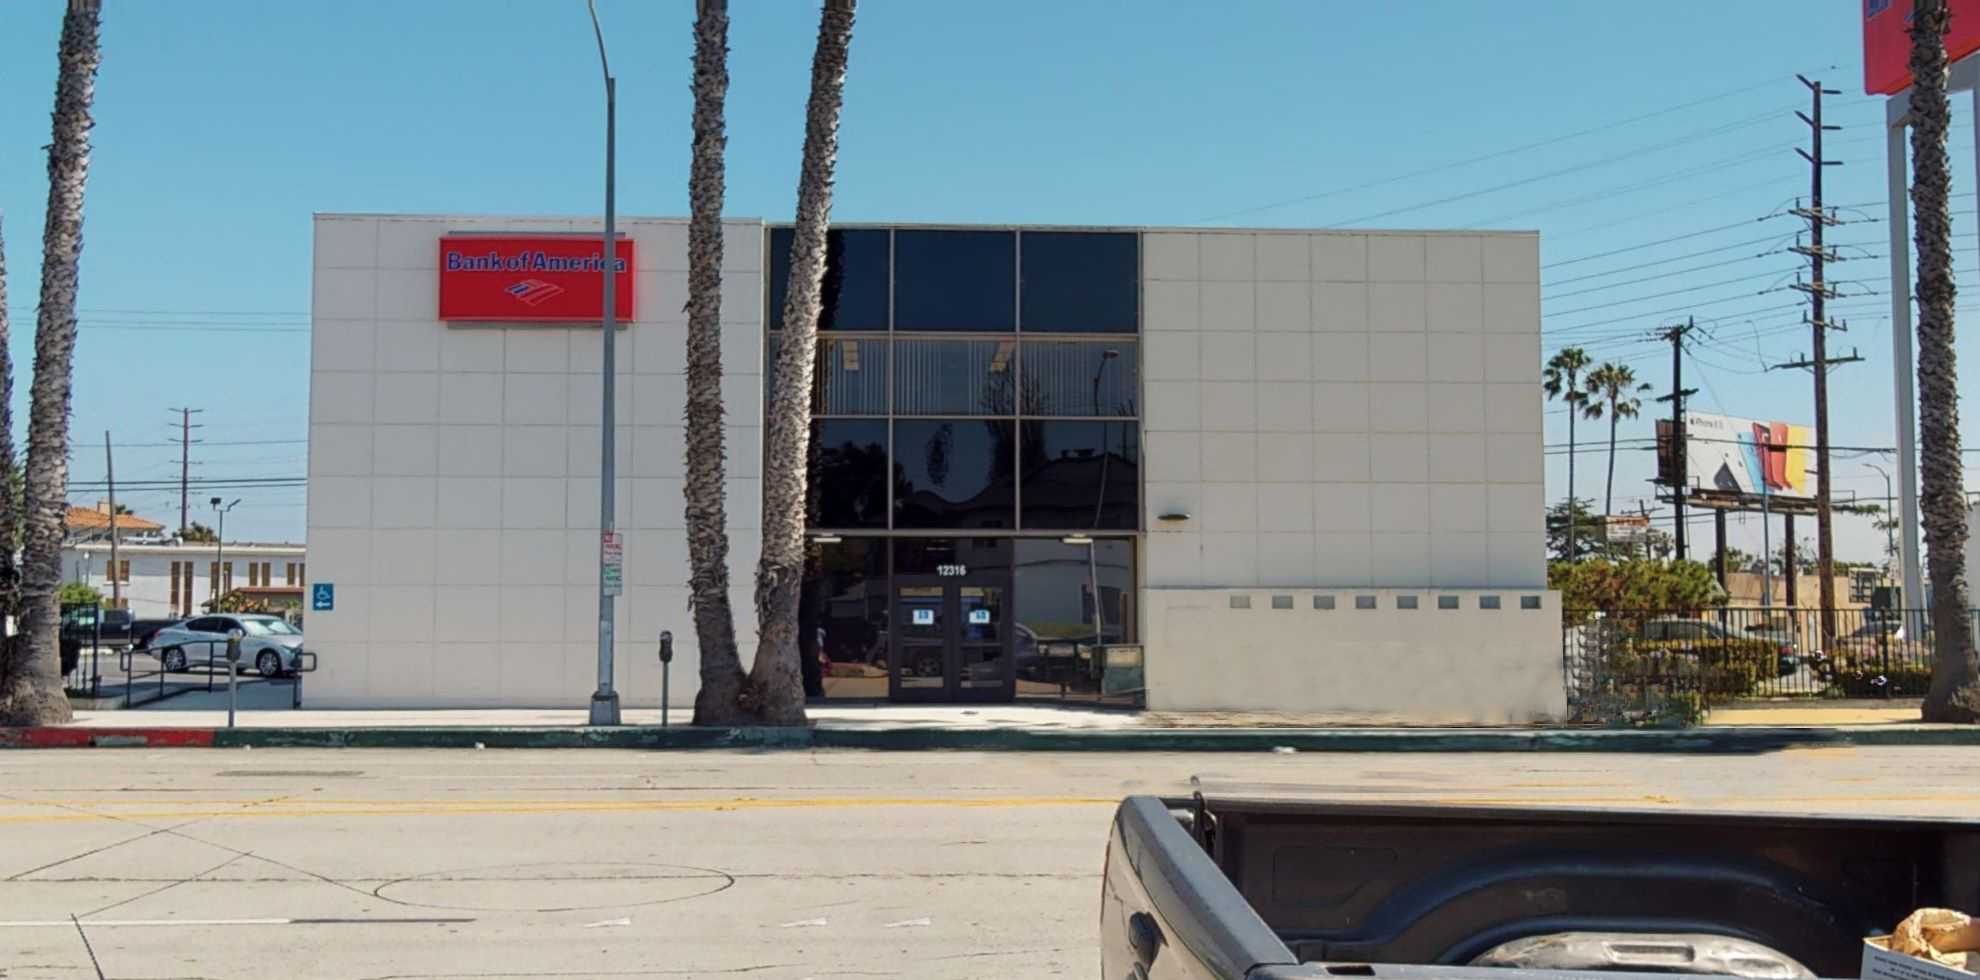 Bank of America financial center with walk-up ATM   12316 W Washington Blvd, Los Angeles, CA 90066